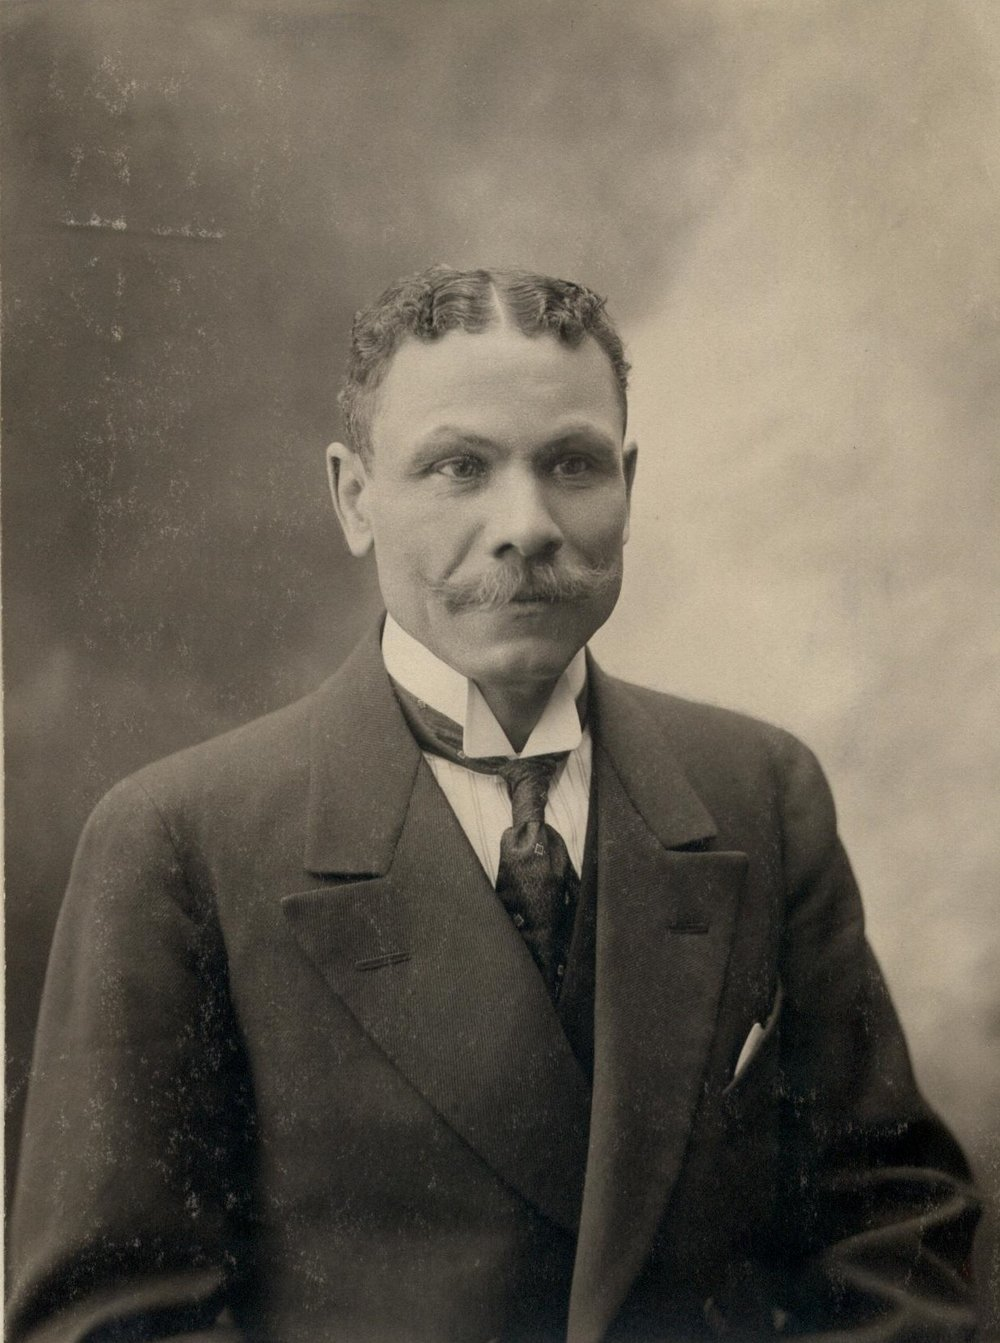 William Henry Hunt, 1911. William H. Hunt, Official Personnel Folders-Department of State; Record Group 146: Records of the U.S. Civil Service Commission; National Archives, St. Louis, MO